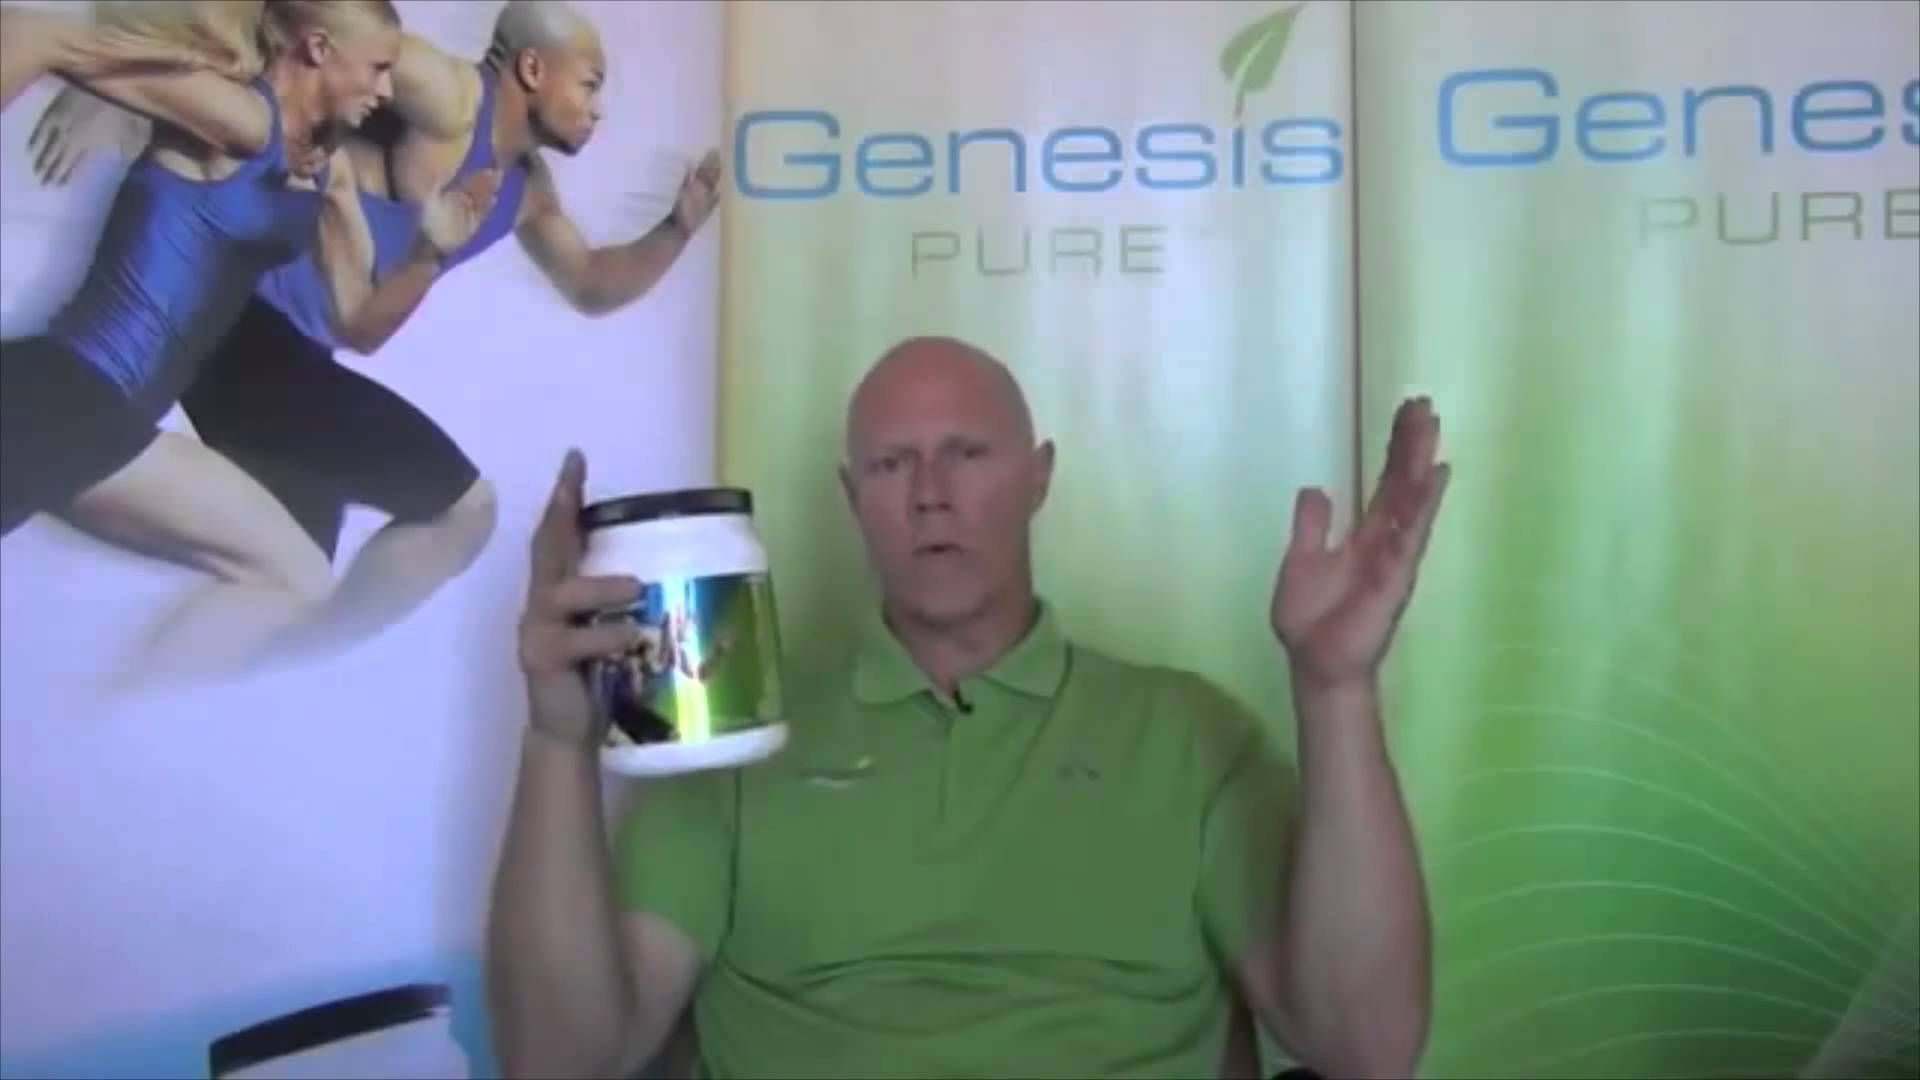 Wow Genesis Pure Sport Superior Products Genesis Pure